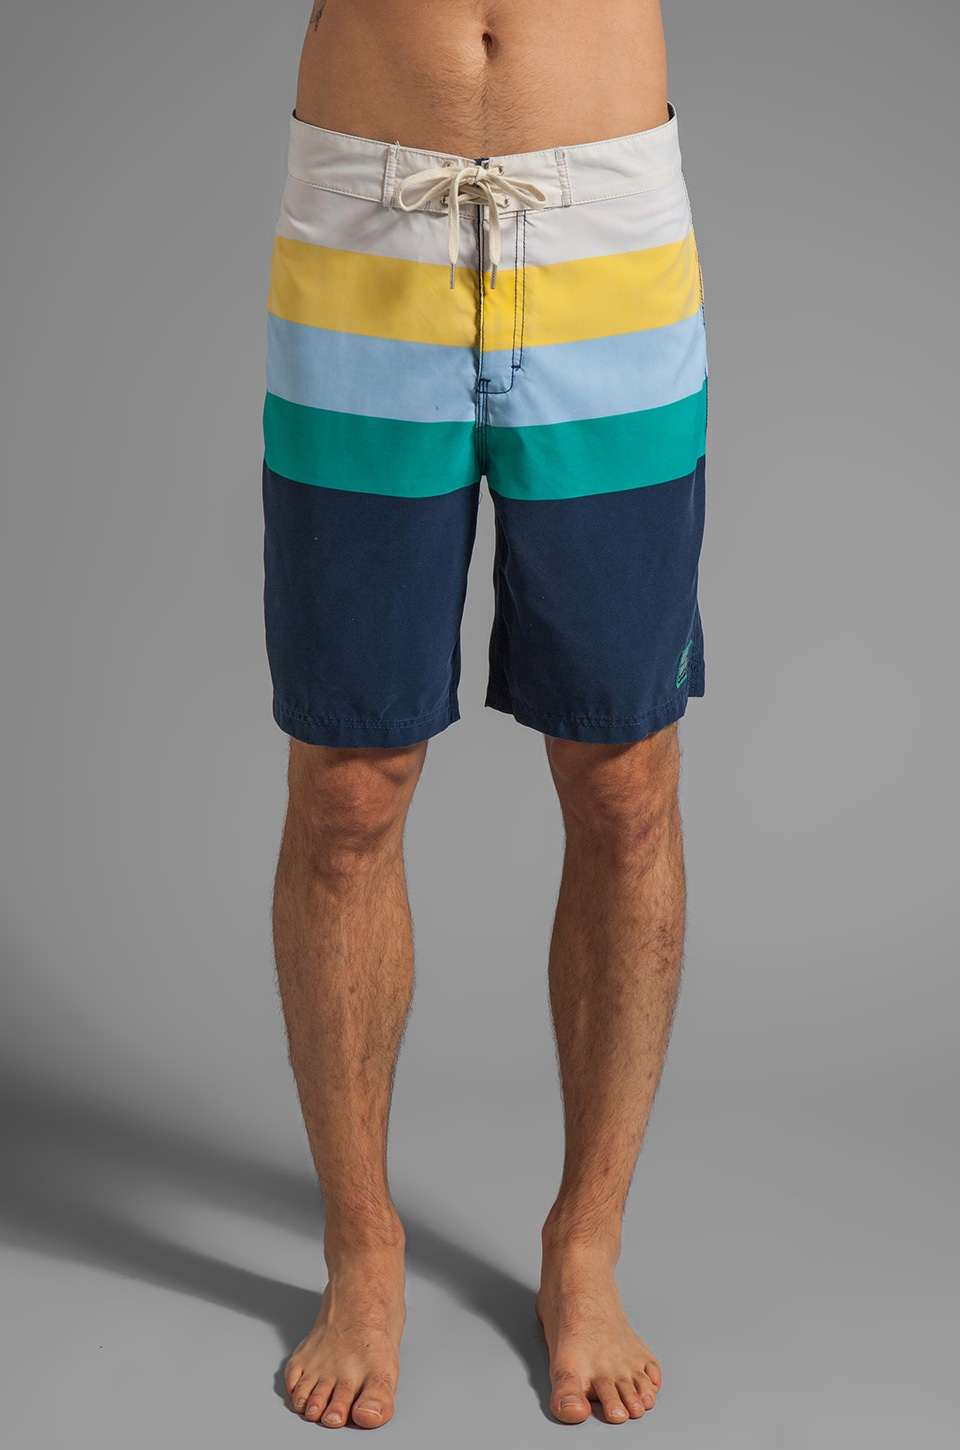 Insight Retro Daze Mid Boardshort in Black Out Blue